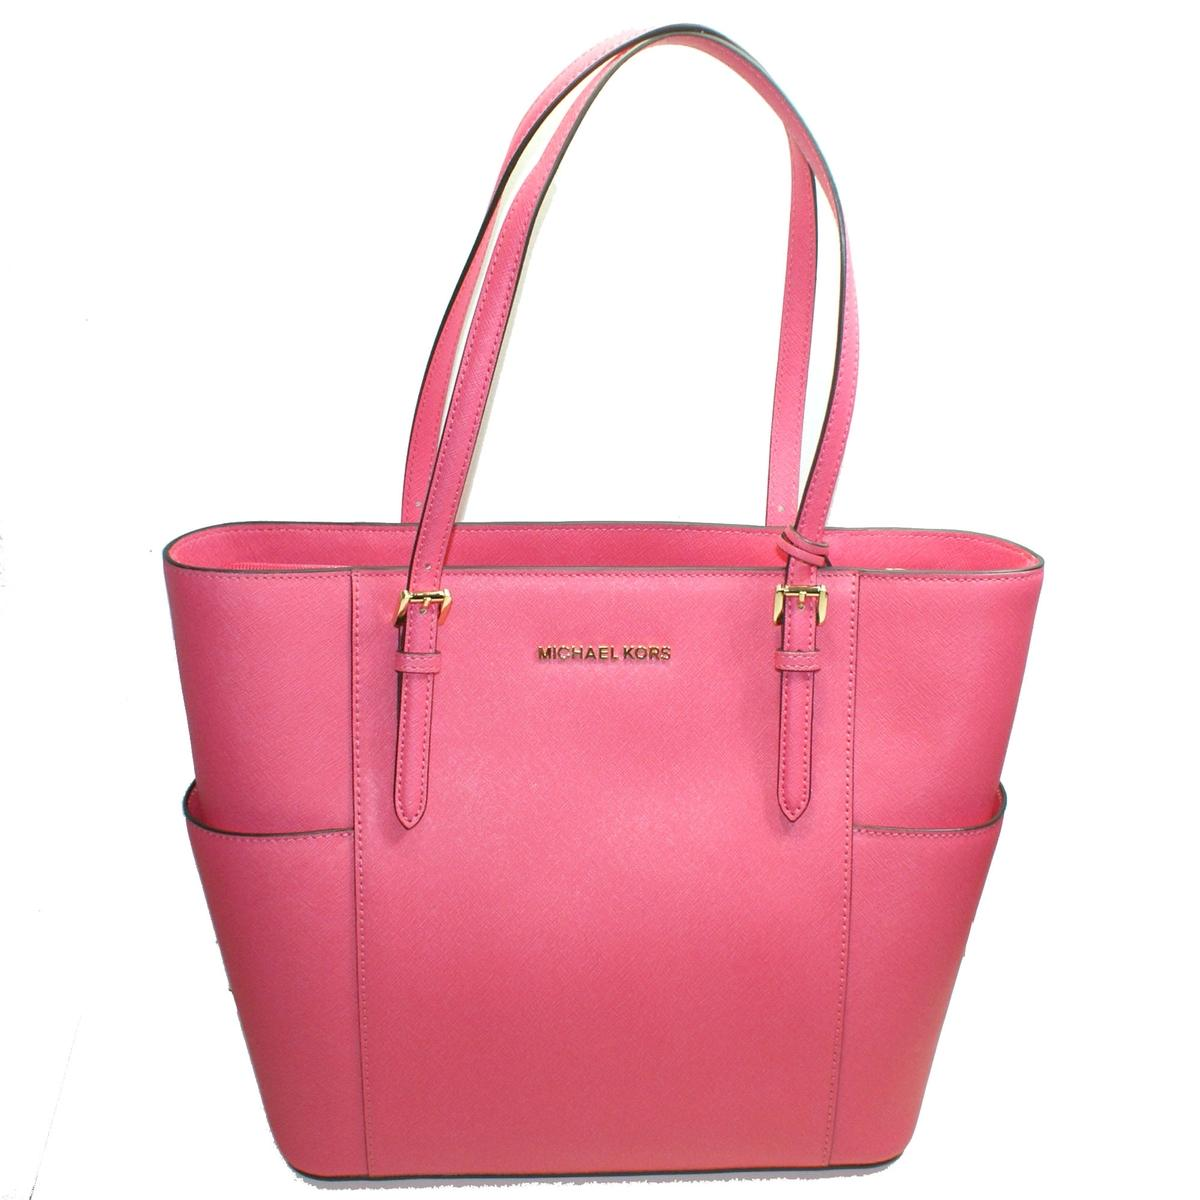 a0be9083d0b529 Home · Michael Kors · Jet Set Travel Leather Large Tote Bag Rose Pink.  CLICK THUMBNAIL TO ZOOM. Found ...